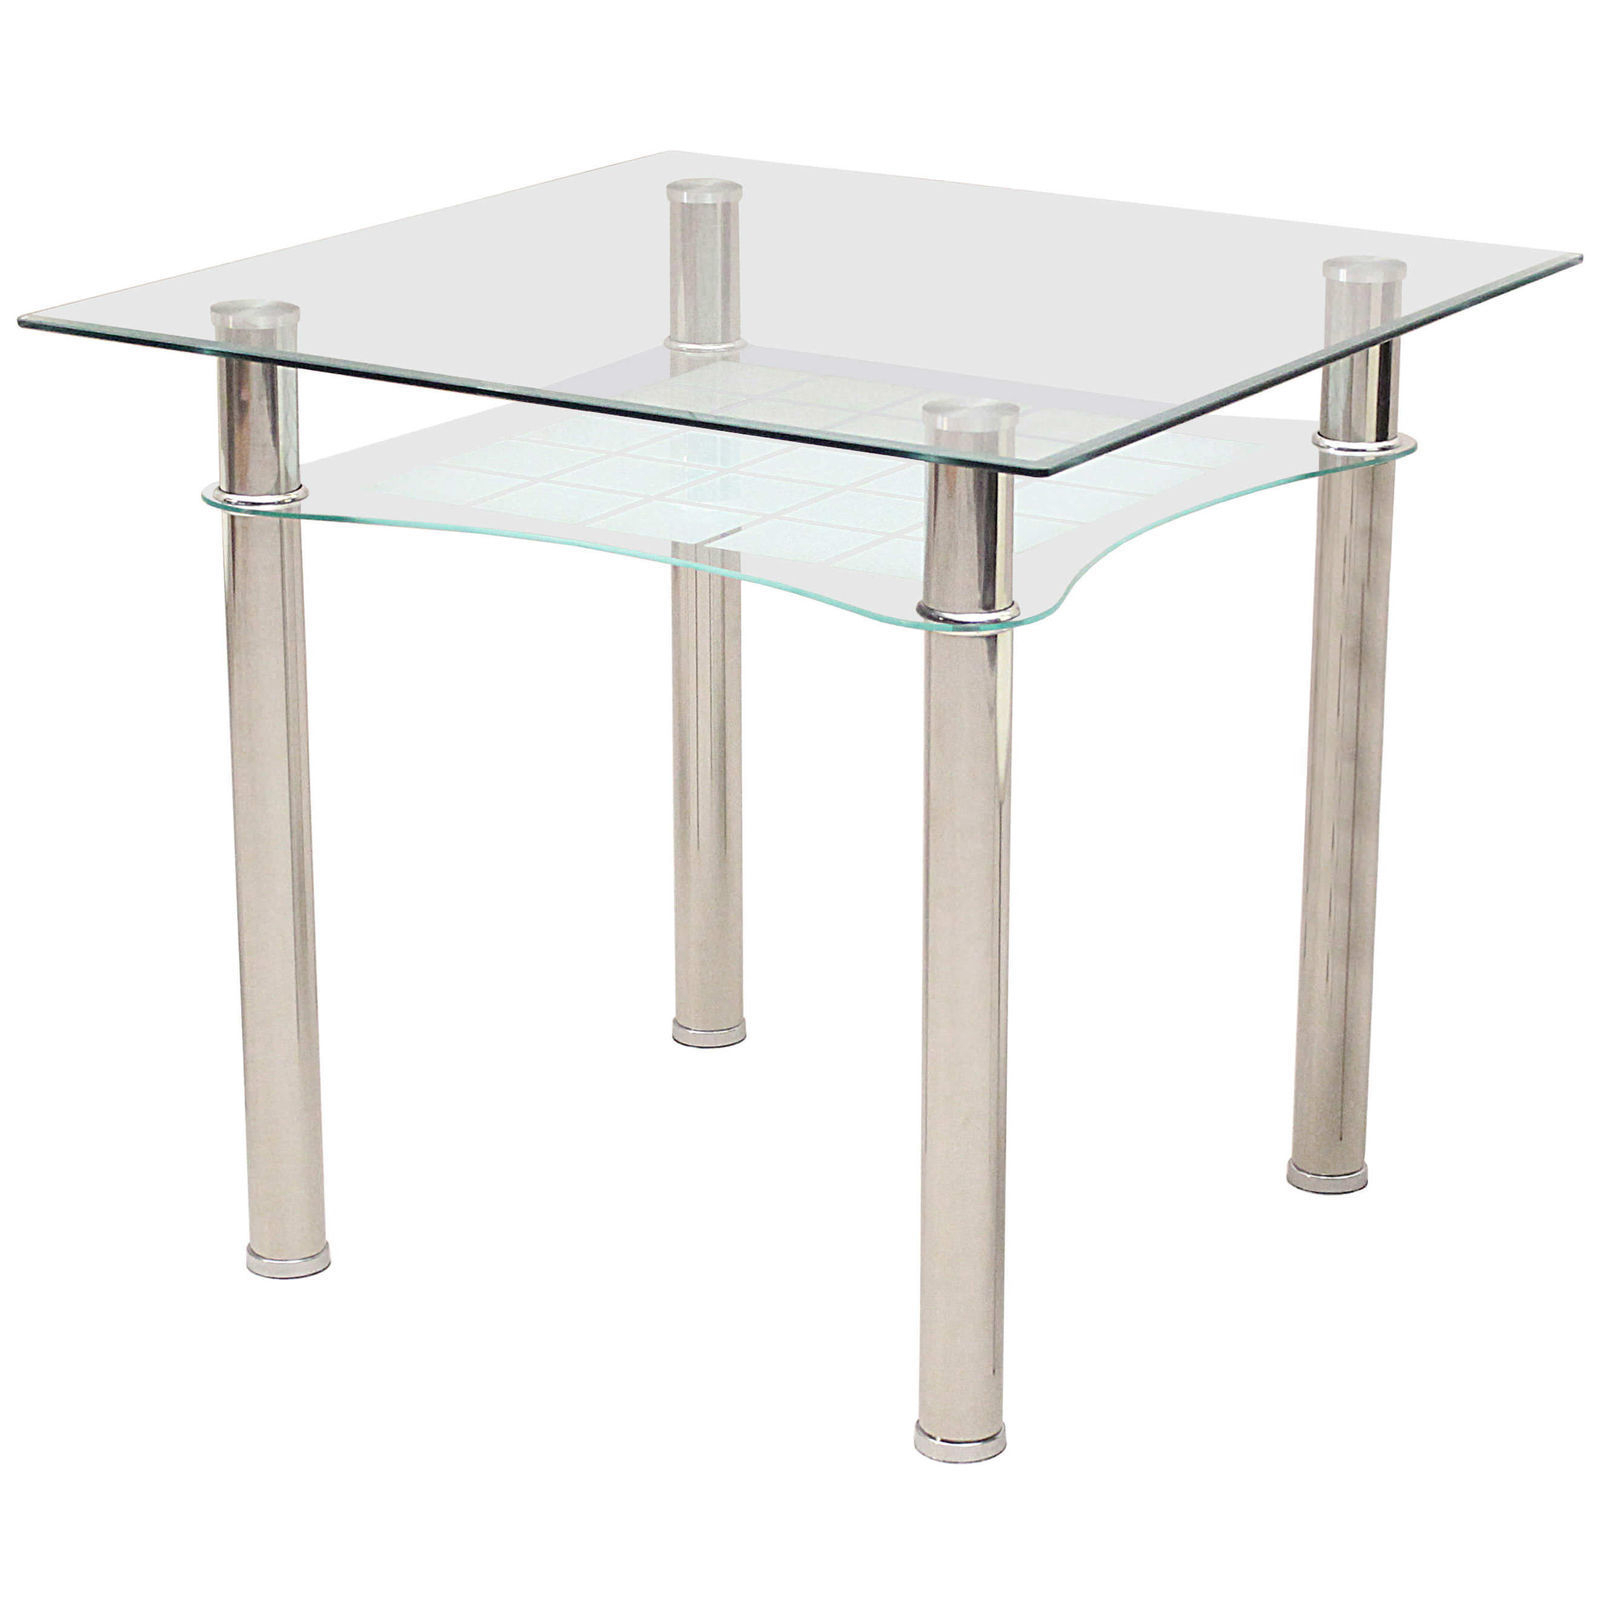 Most Popular Details About Kitchen Dining Table Clear Glass Square Top Under Shelf Chrome Small 85cm X 85cm Pertaining To Eames Style Dining Tables With Chromed Leg And Tempered Glass Top (Gallery 30 of 30)